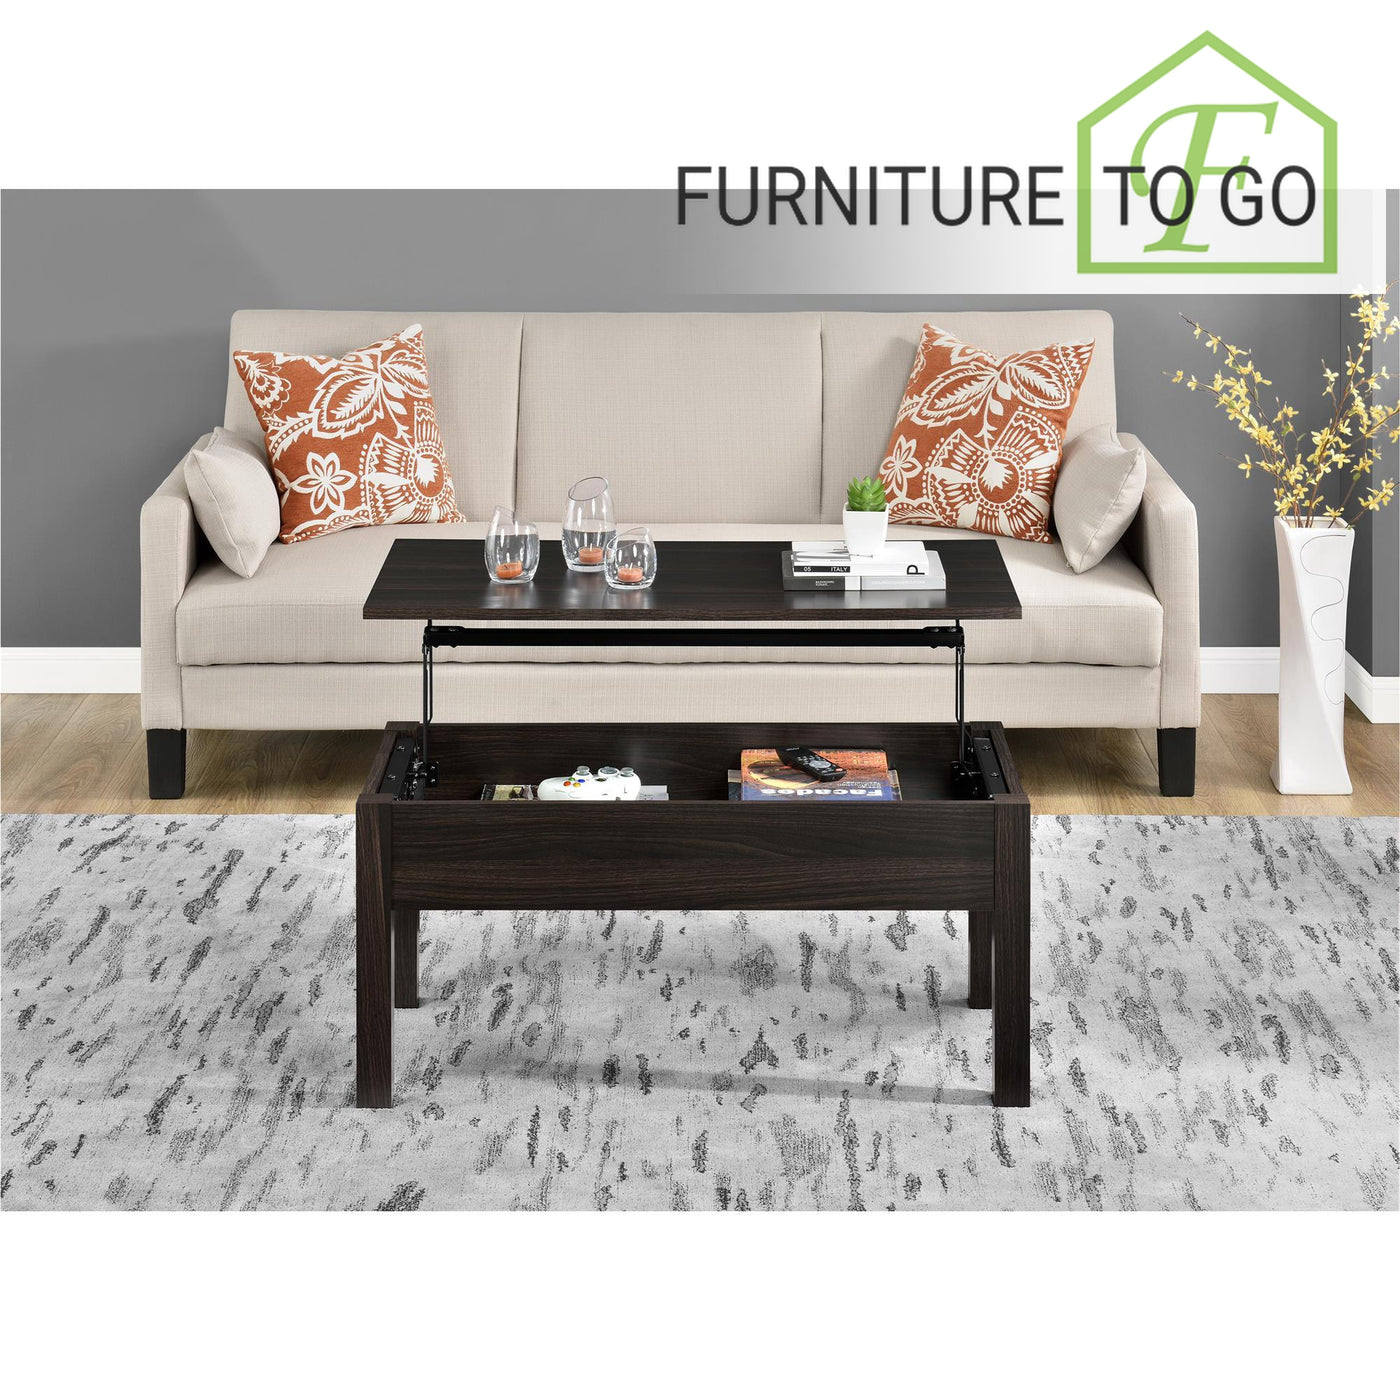 Surprising Clearance Furniture In Dallas 60 00 Espresso Convertible Coffee Table Pabps2019 Chair Design Images Pabps2019Com